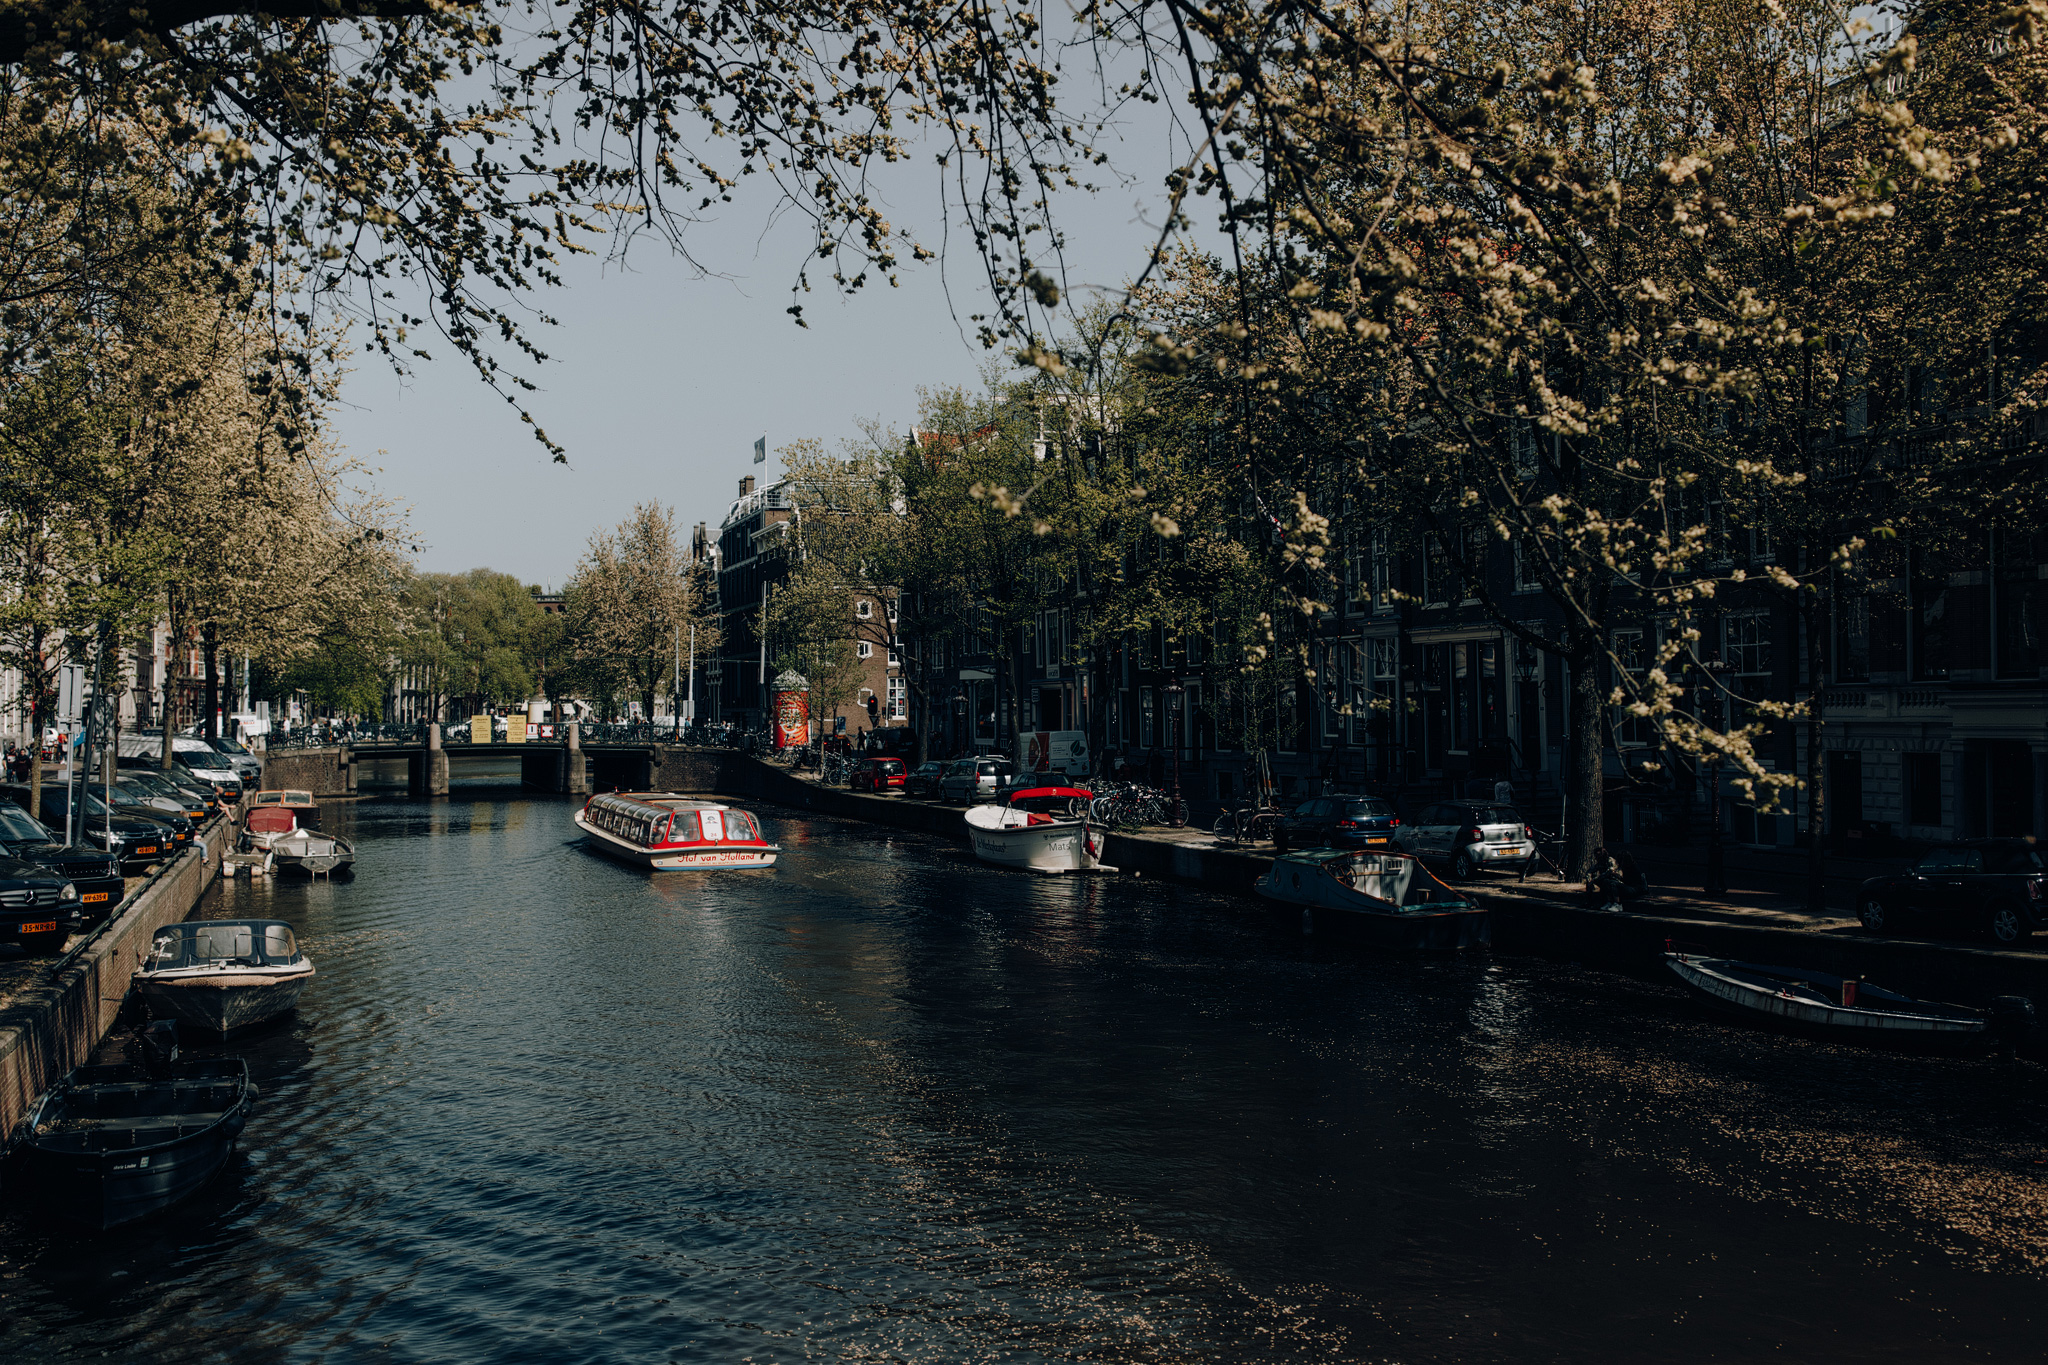 Canal boat in the canals of Amsterdam